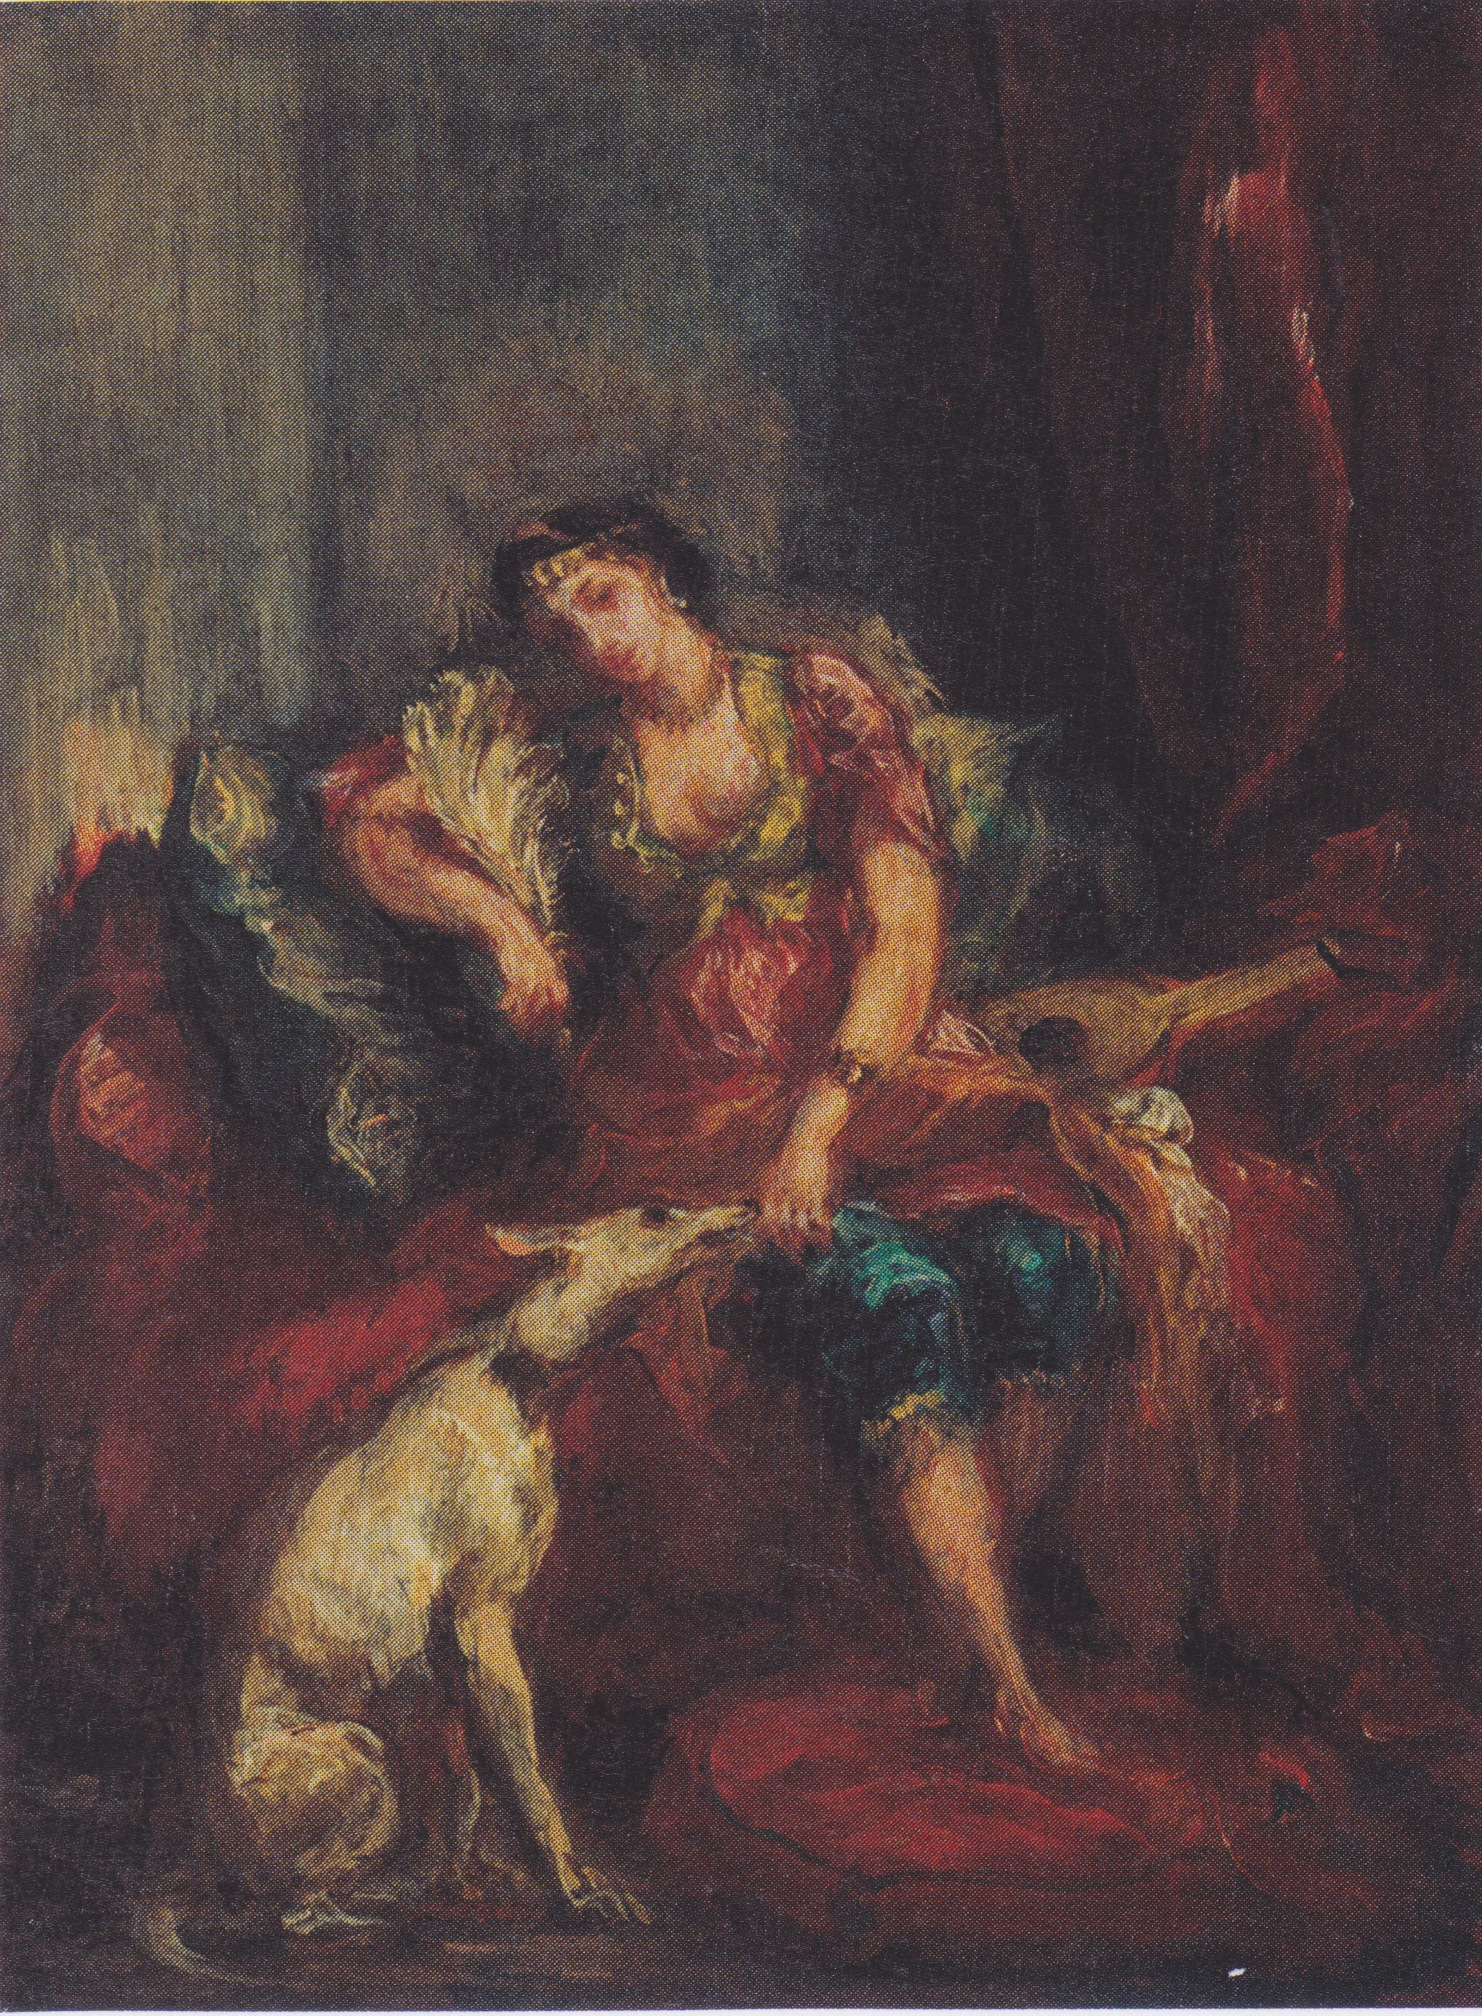 Woman from Algiers with Windhund 1854